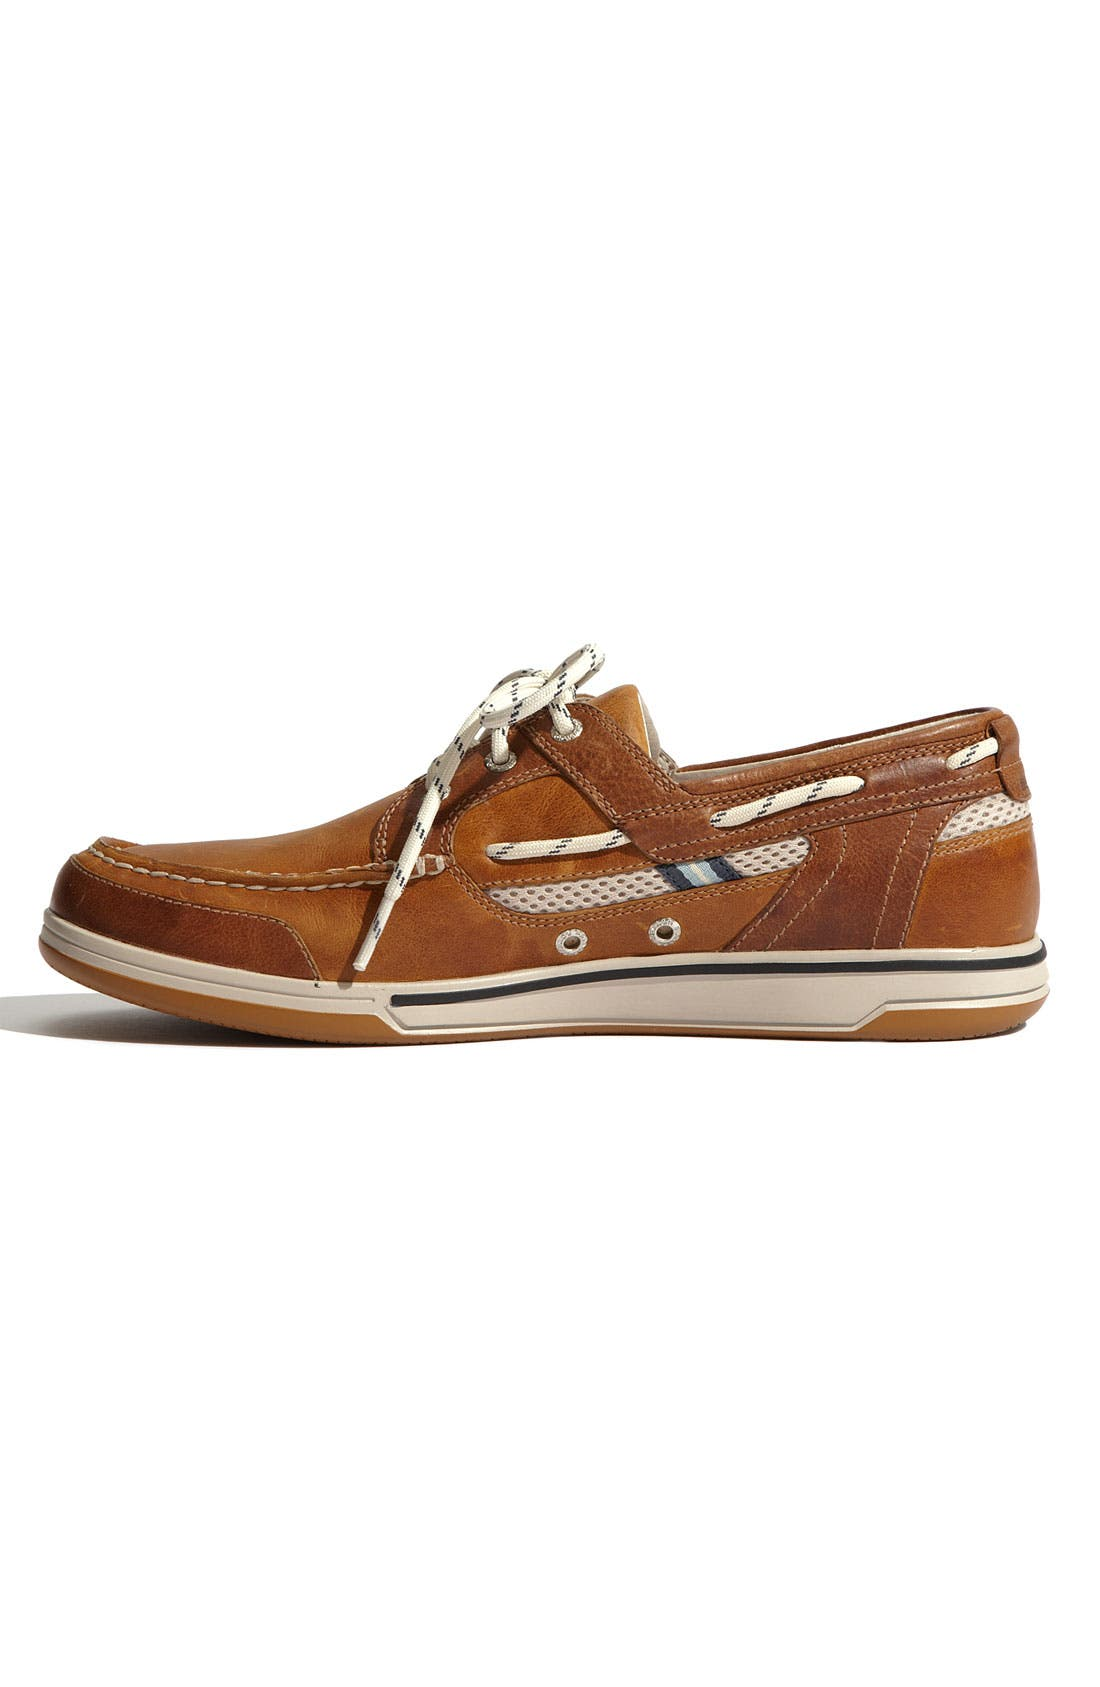 Alternate Image 2  - Sebago 'Triton' Boat Shoe